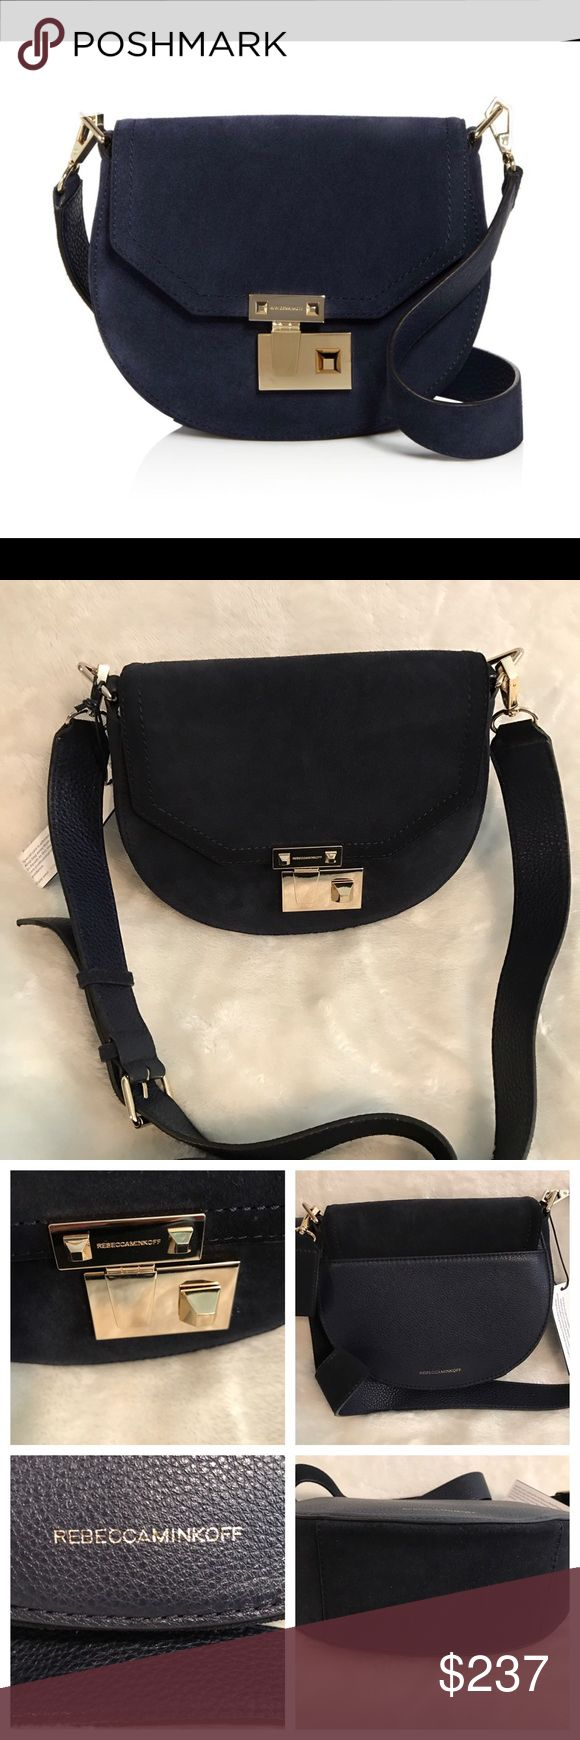 "Rebecca Minkoff medium Paris rocks cross body Brand new with tags Rebecca Minkoff medium paris suede saddle bag in the color moon (navy).  Suede Detachable crossbody strap lined, snap closure Interior and exterior slip pocket  22"" strap drop Includes dust bag and care card. Rebecca Minkoff Bags Crossbody Bags"